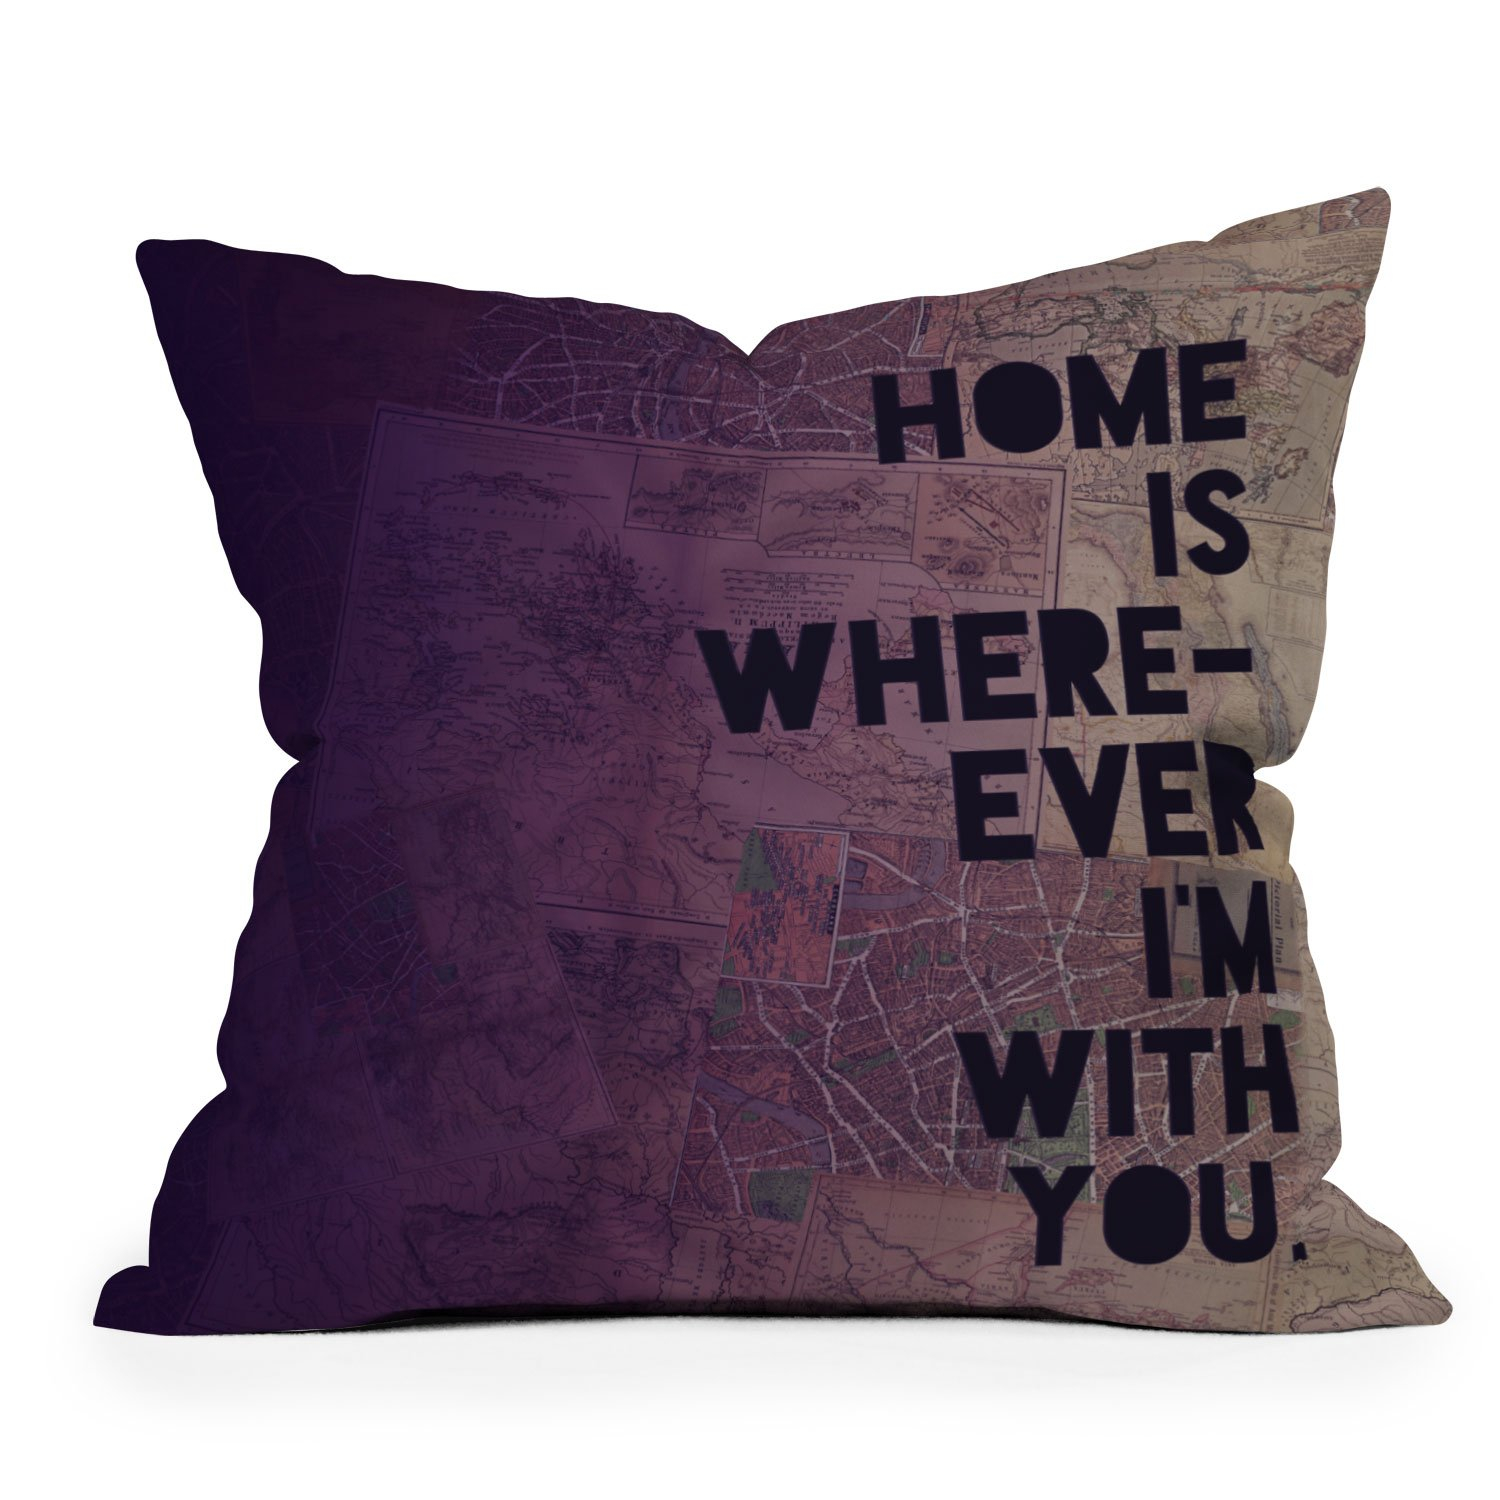 Image of Leah Flores With You Throw Pillow